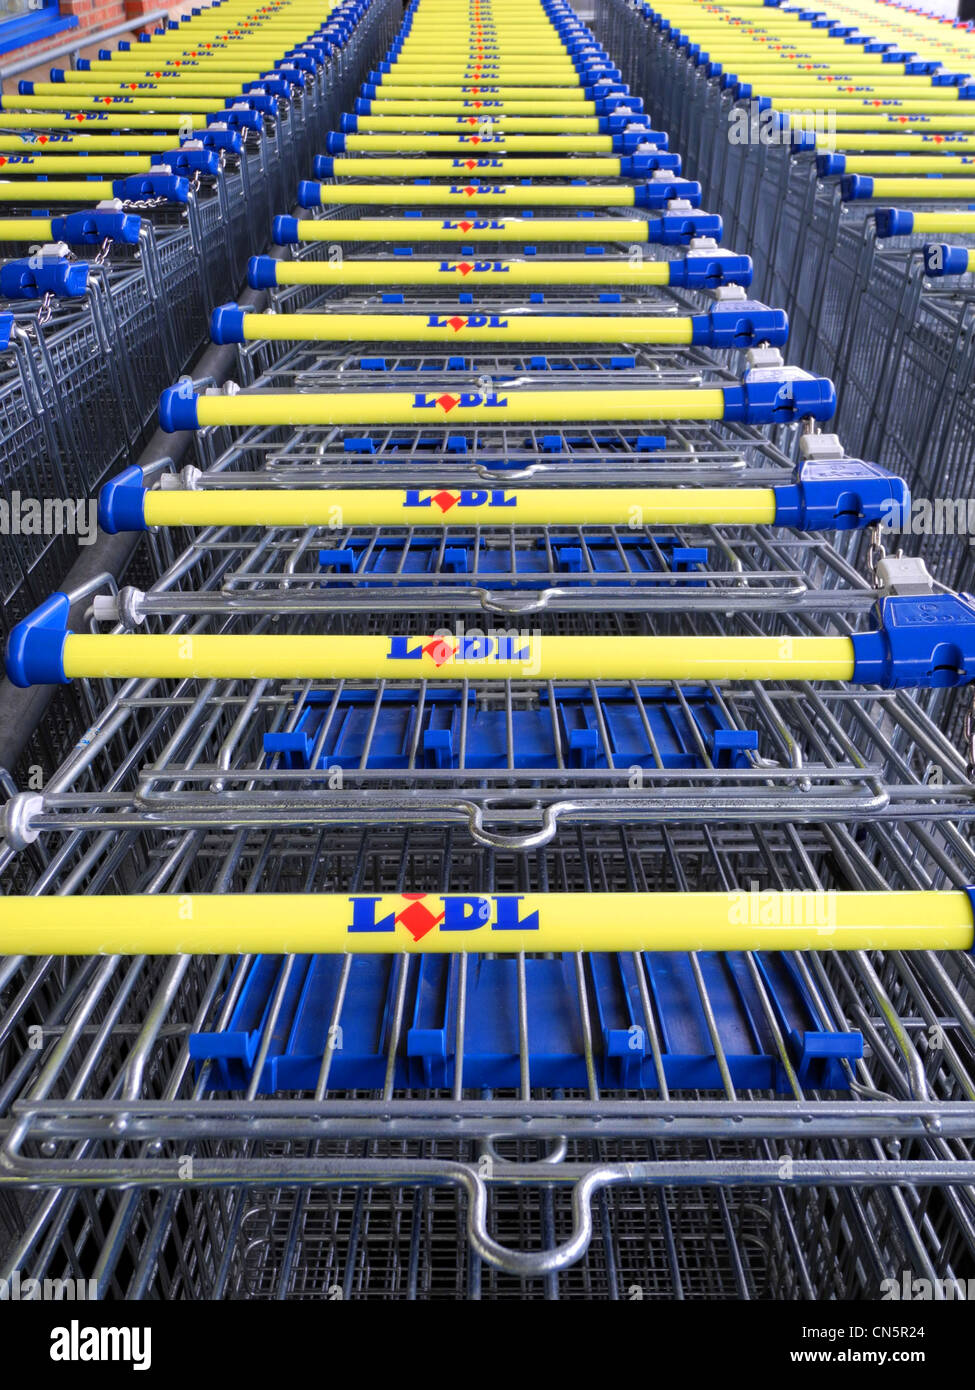 Lidl shopping trolleys stacked together - Stock Image